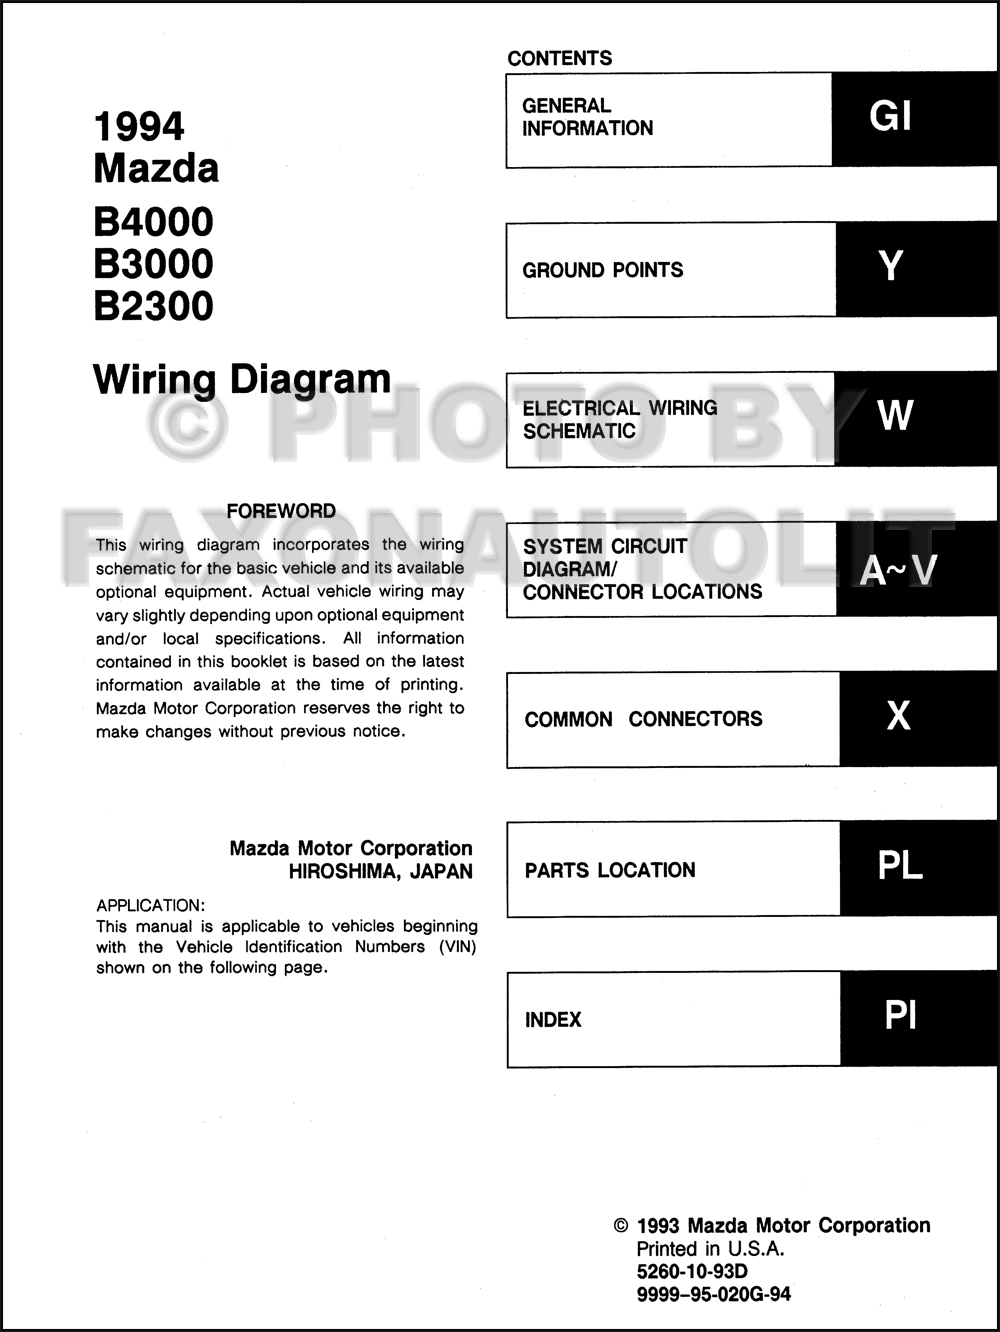 1994MazdaB4000B3000B23000OWD TOC 1994 mazda b4000 b3000 b2300 pickup truck wiring diagram manual mazda b4000 fuse box diagram at eliteediting.co